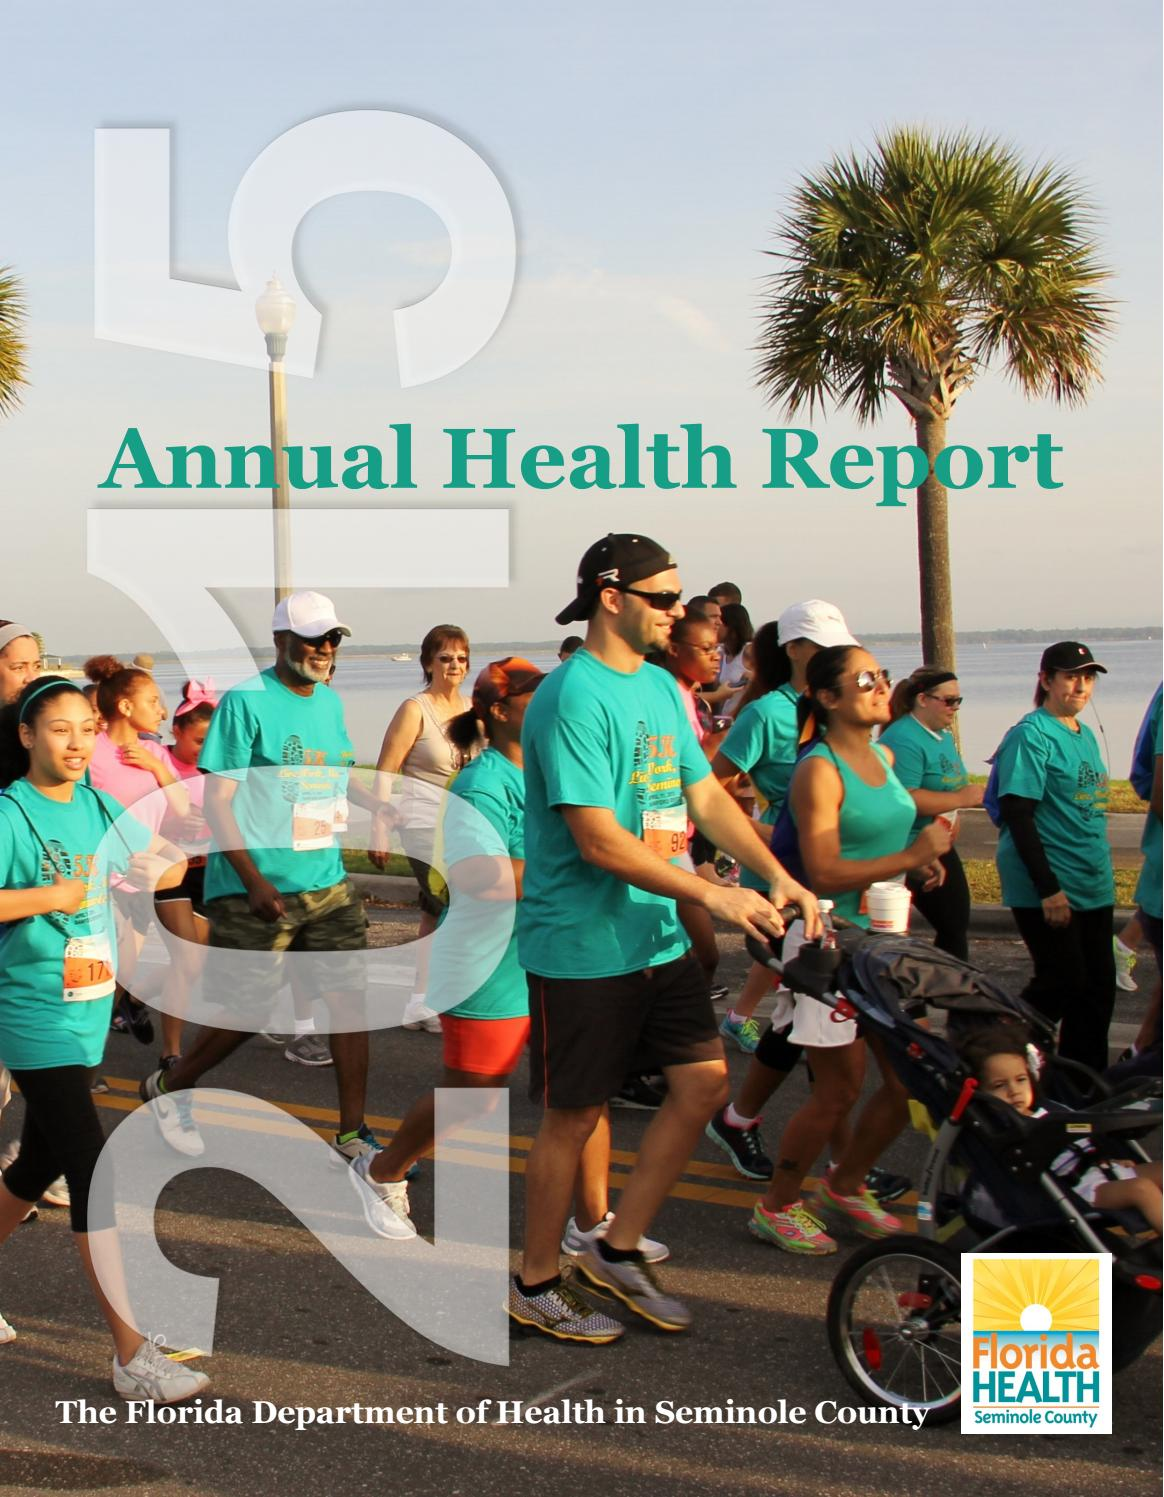 seminole county annual report 2015 by florida department of health